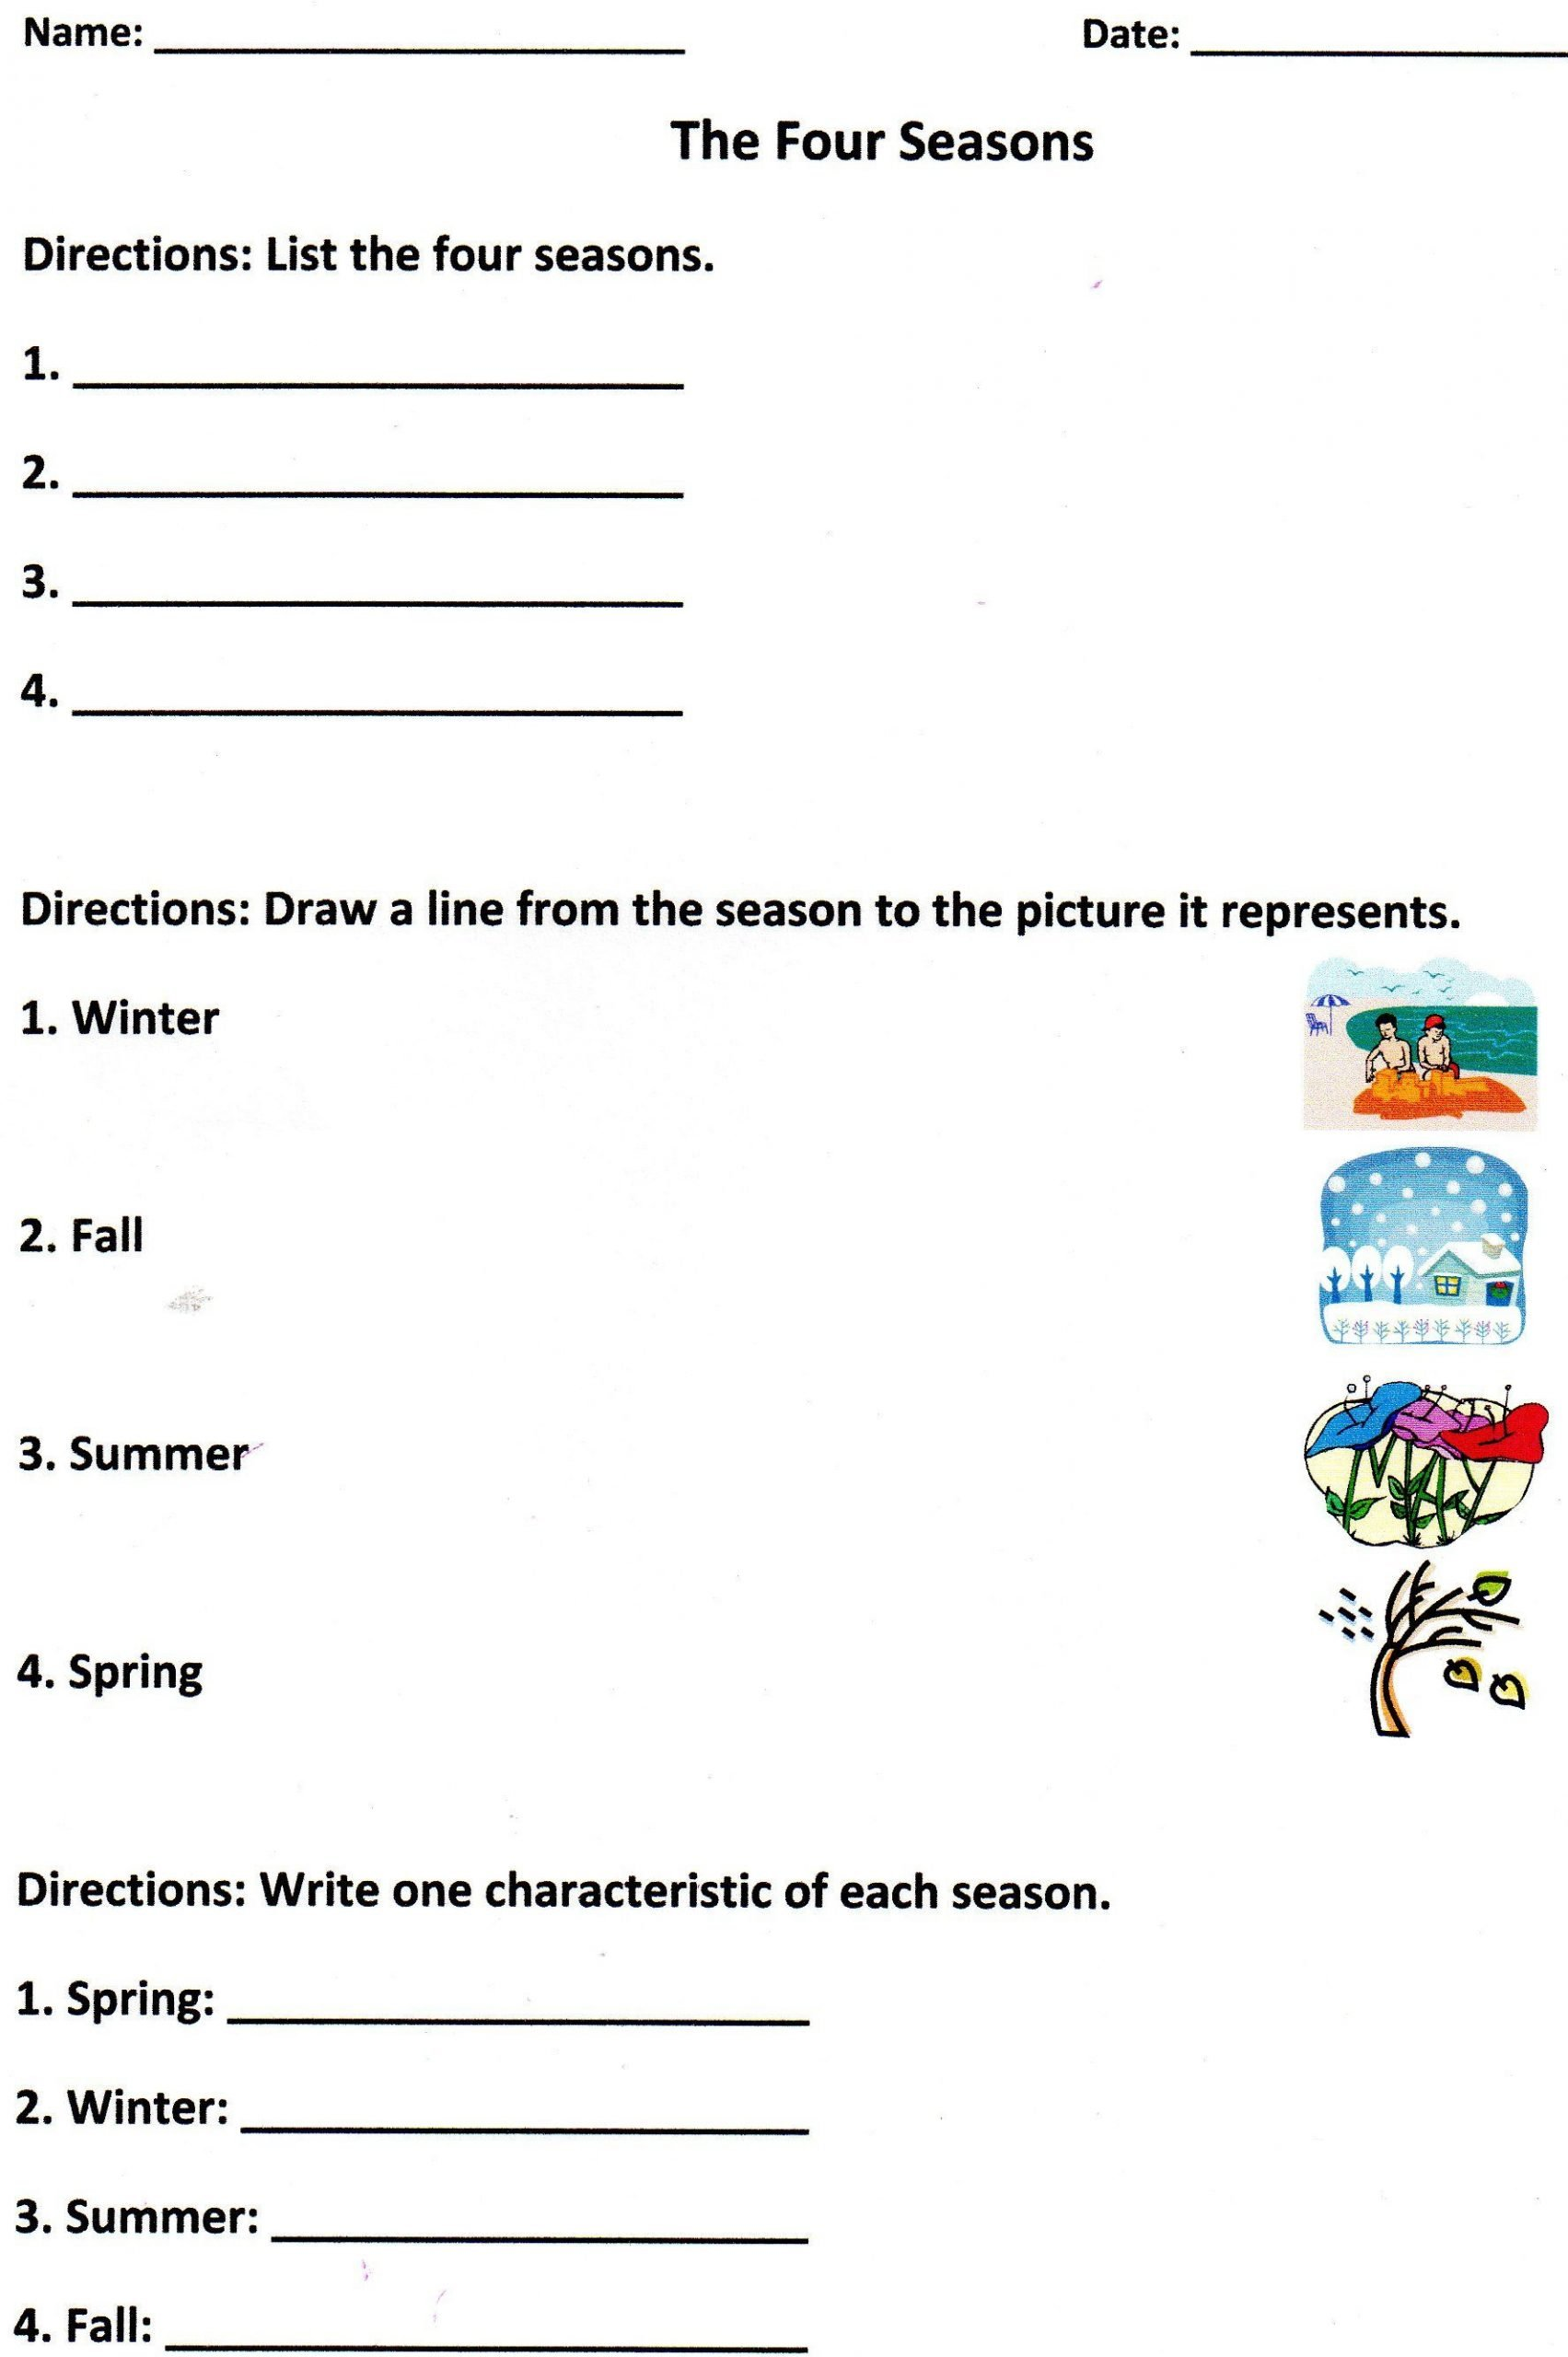 Timeline Worksheets for 1st Grade the Four Seasons assessment for K 1